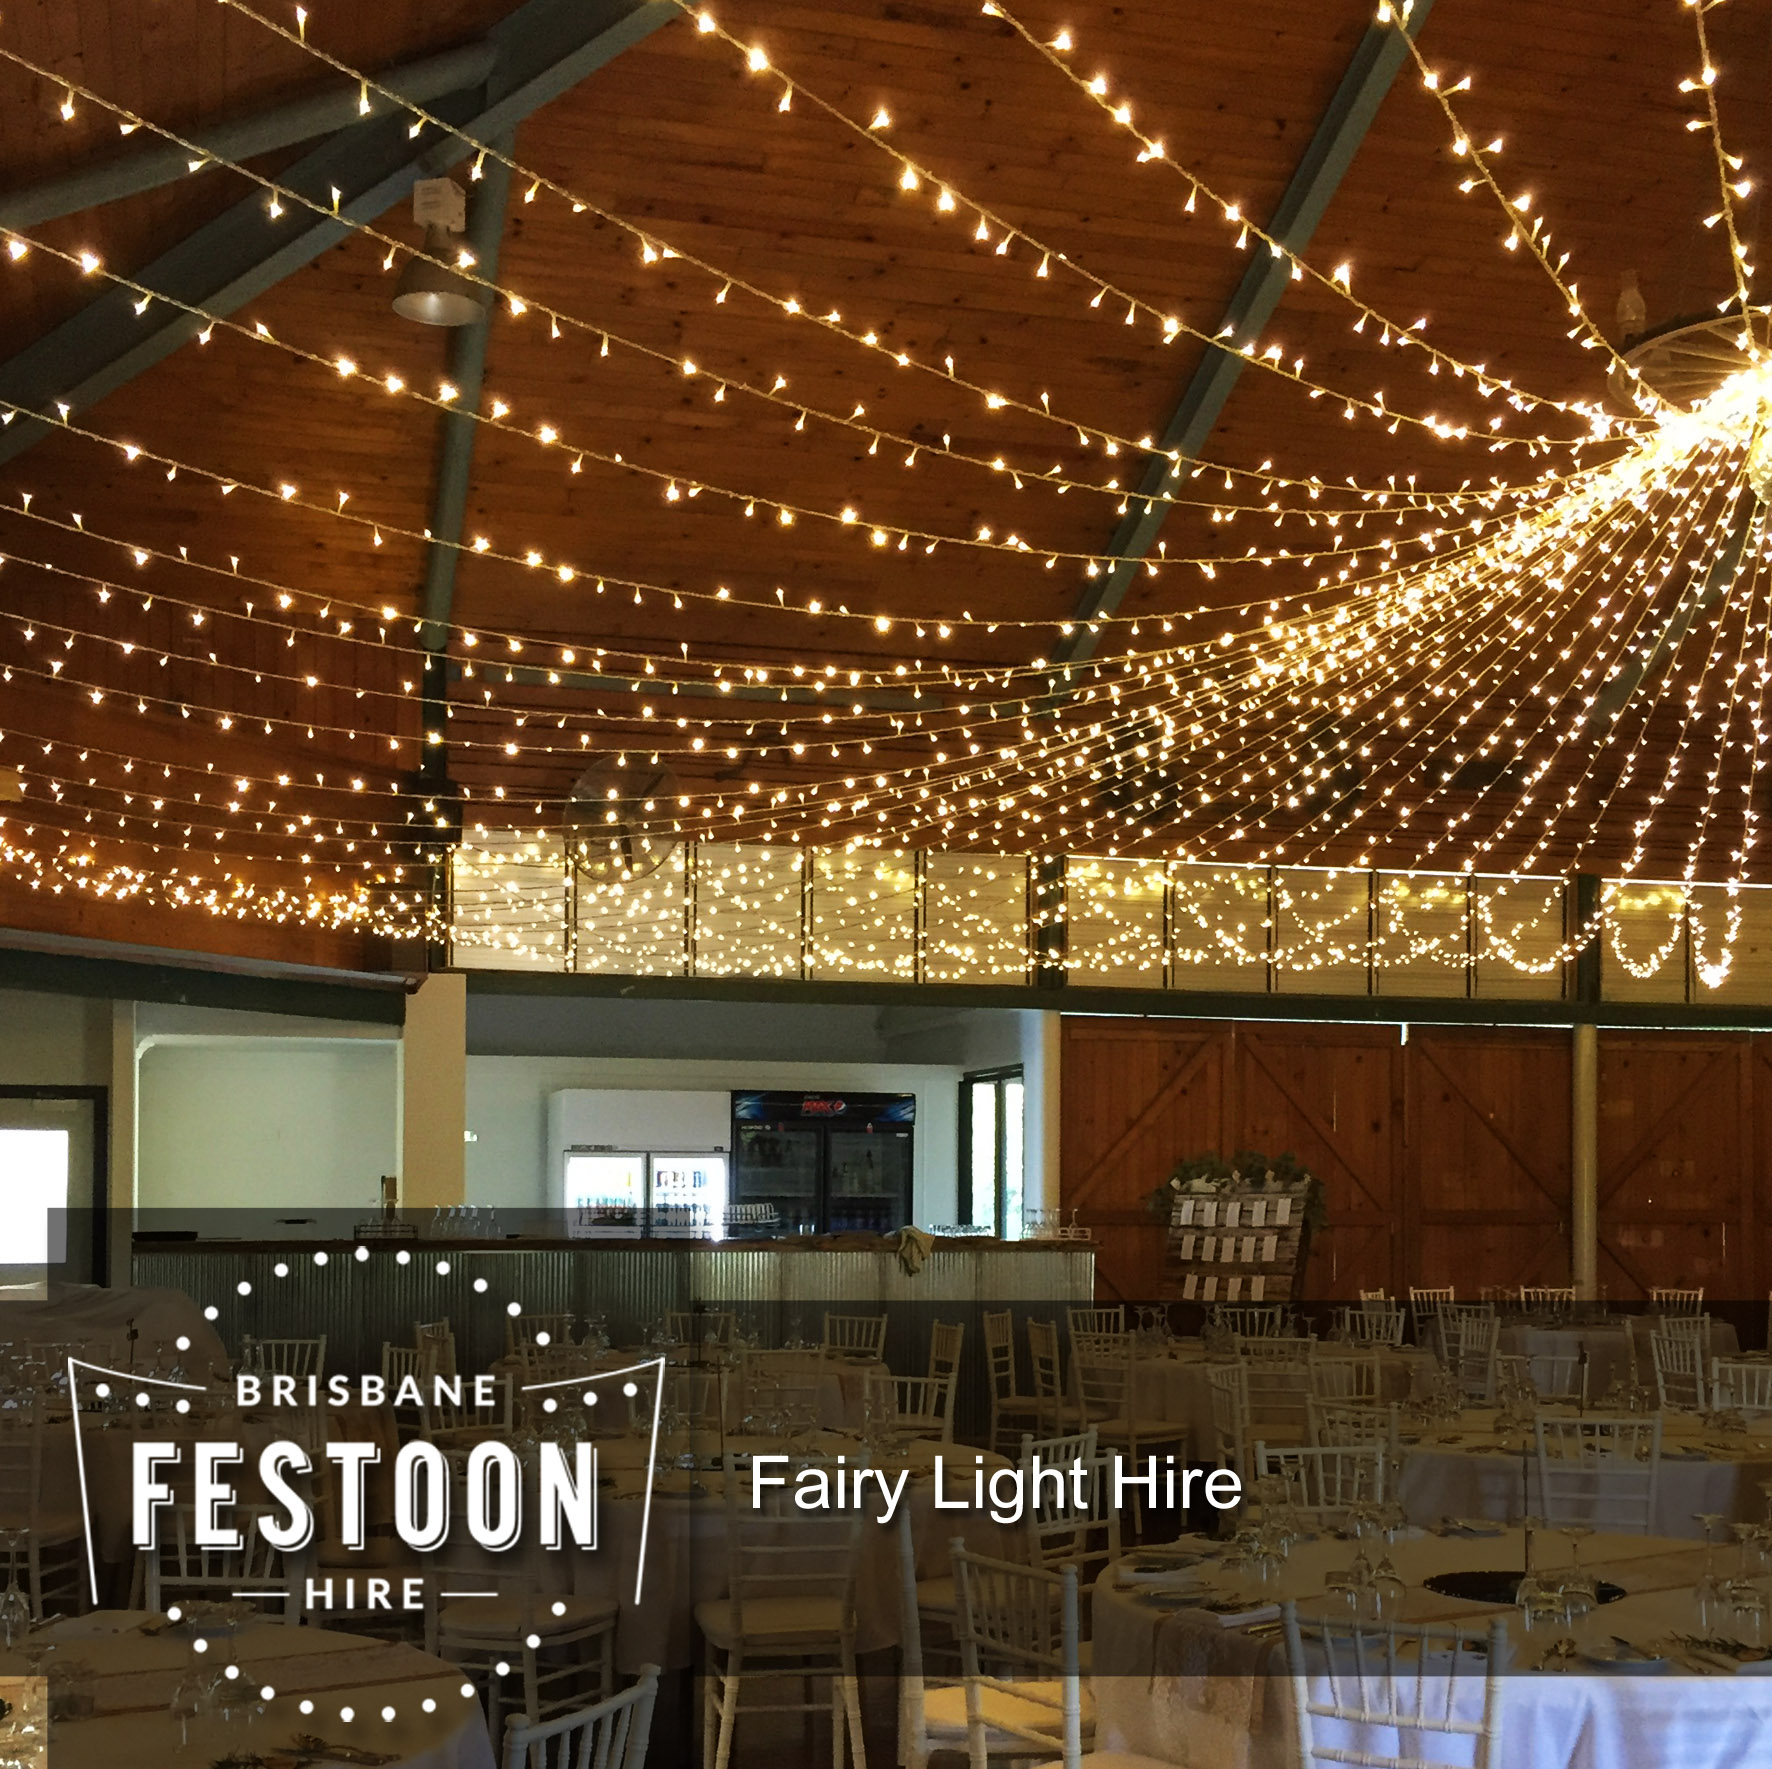 Brisbane Festoon Hire - Fairy Light Hire 2.jpg